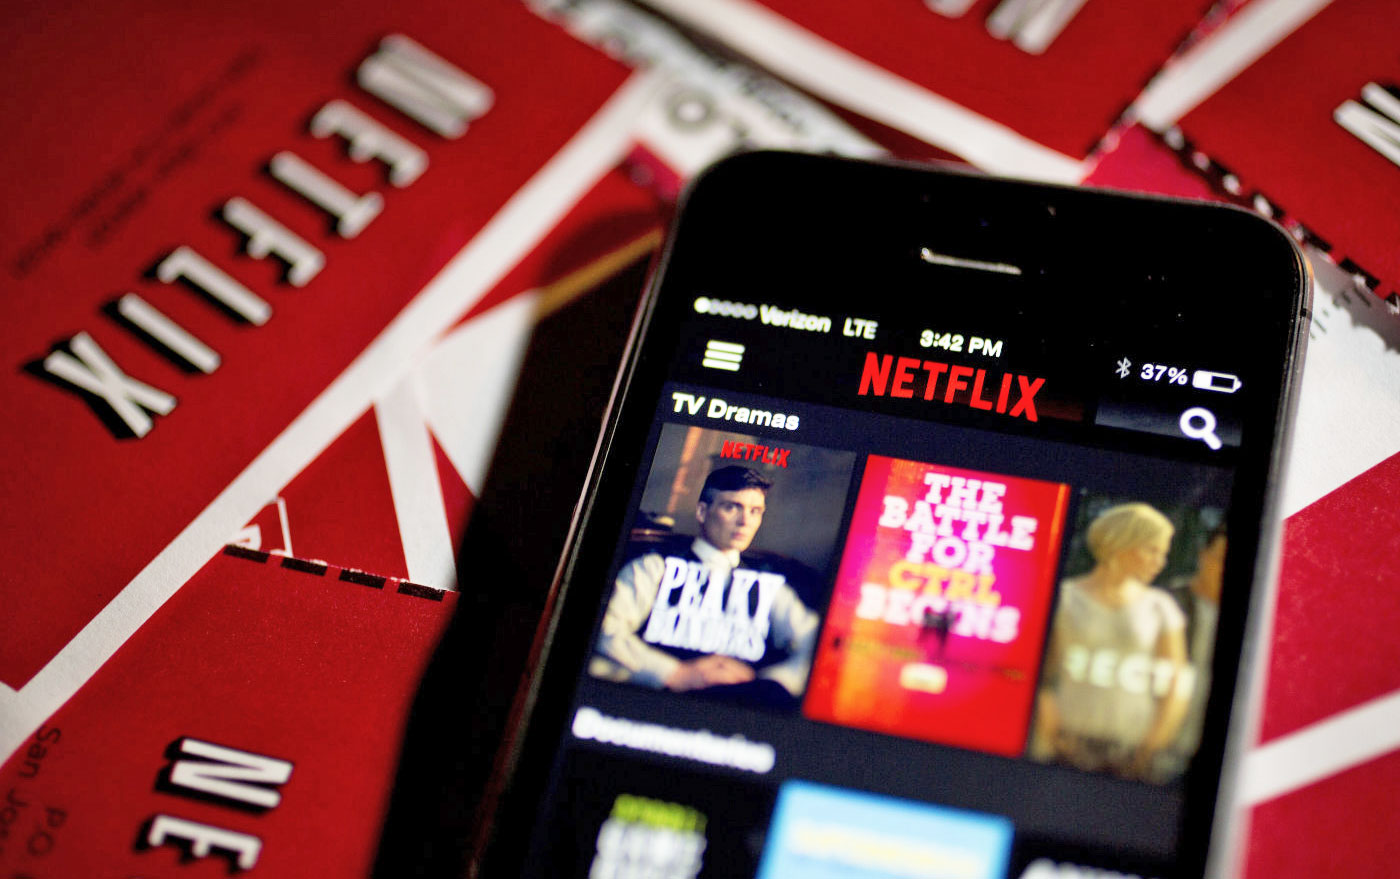 Netflix adds data-saving quality controls to mobile apps